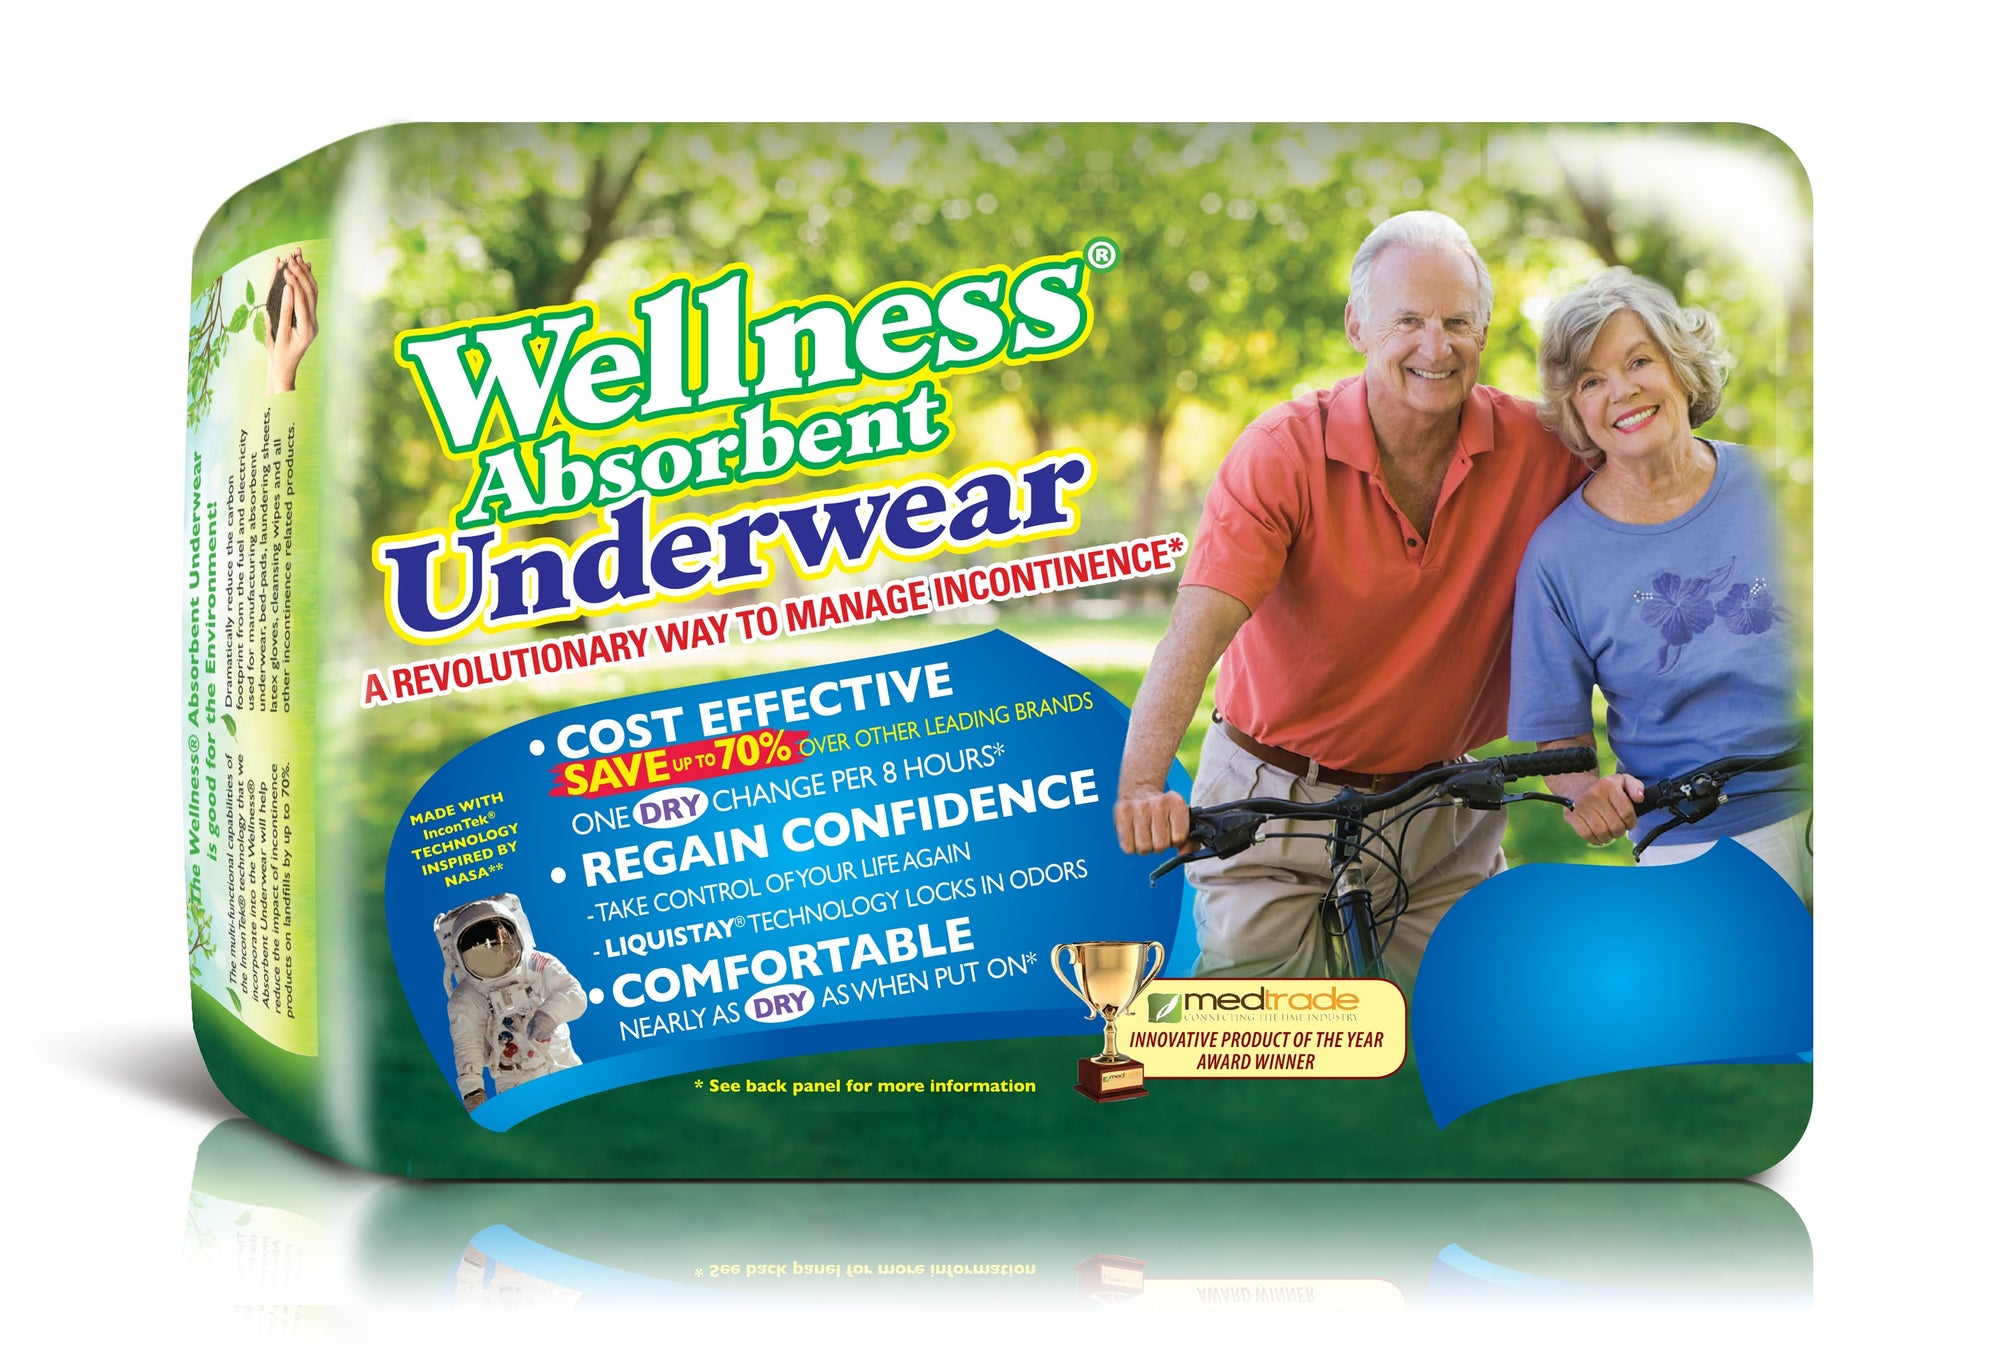 Wellness Absorbent Underwear (Pull On Design)